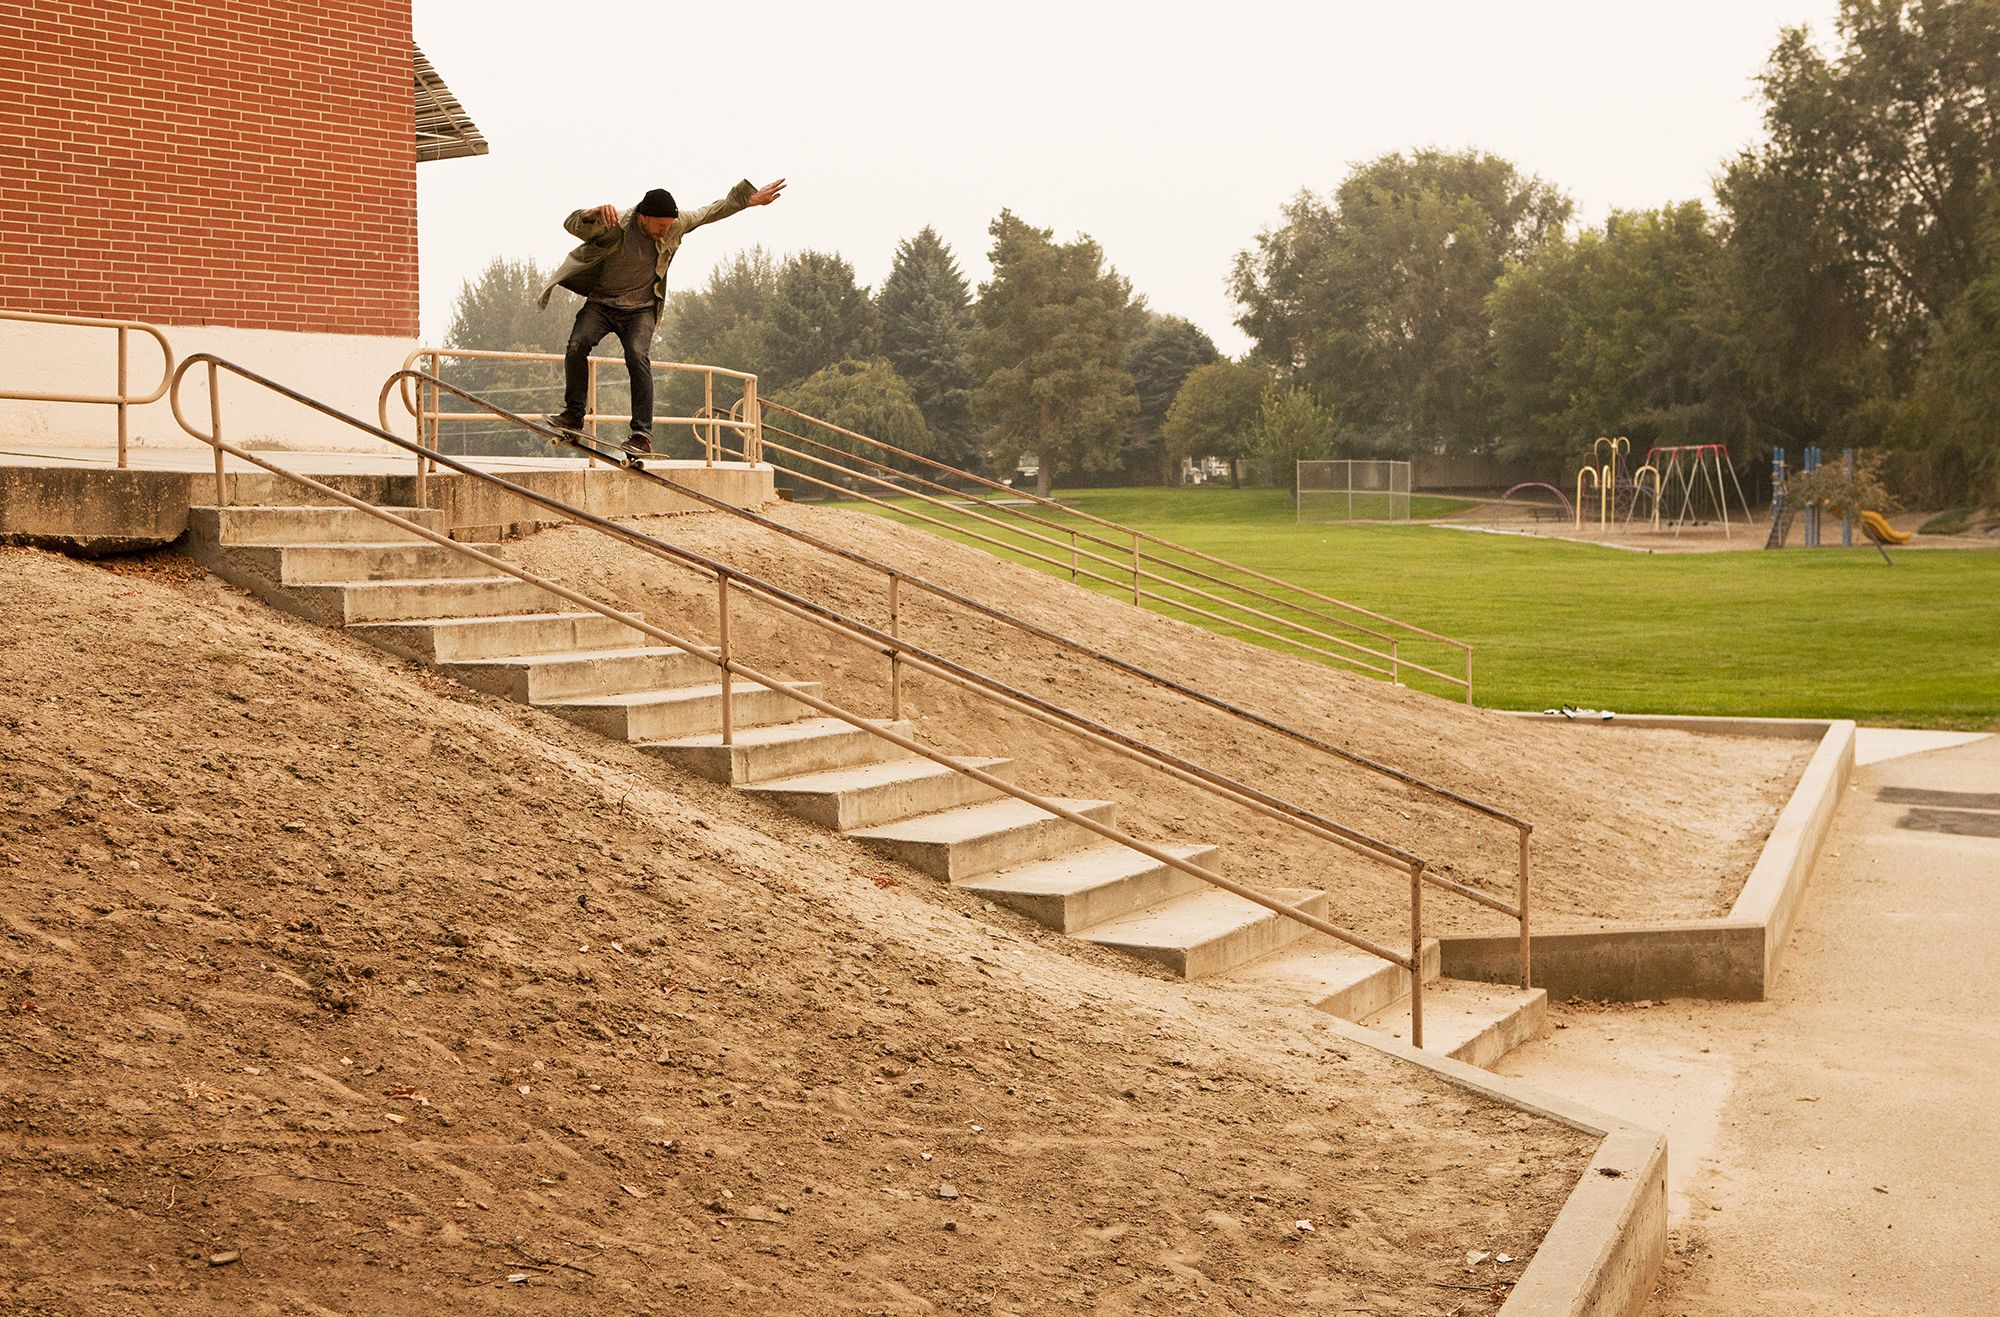 Jamie Thomas back 50 in Boise, Idaho. Fallen's Road Less Traveled Documentary is coming soon. To check out more visit, www.fallenfootwear.com